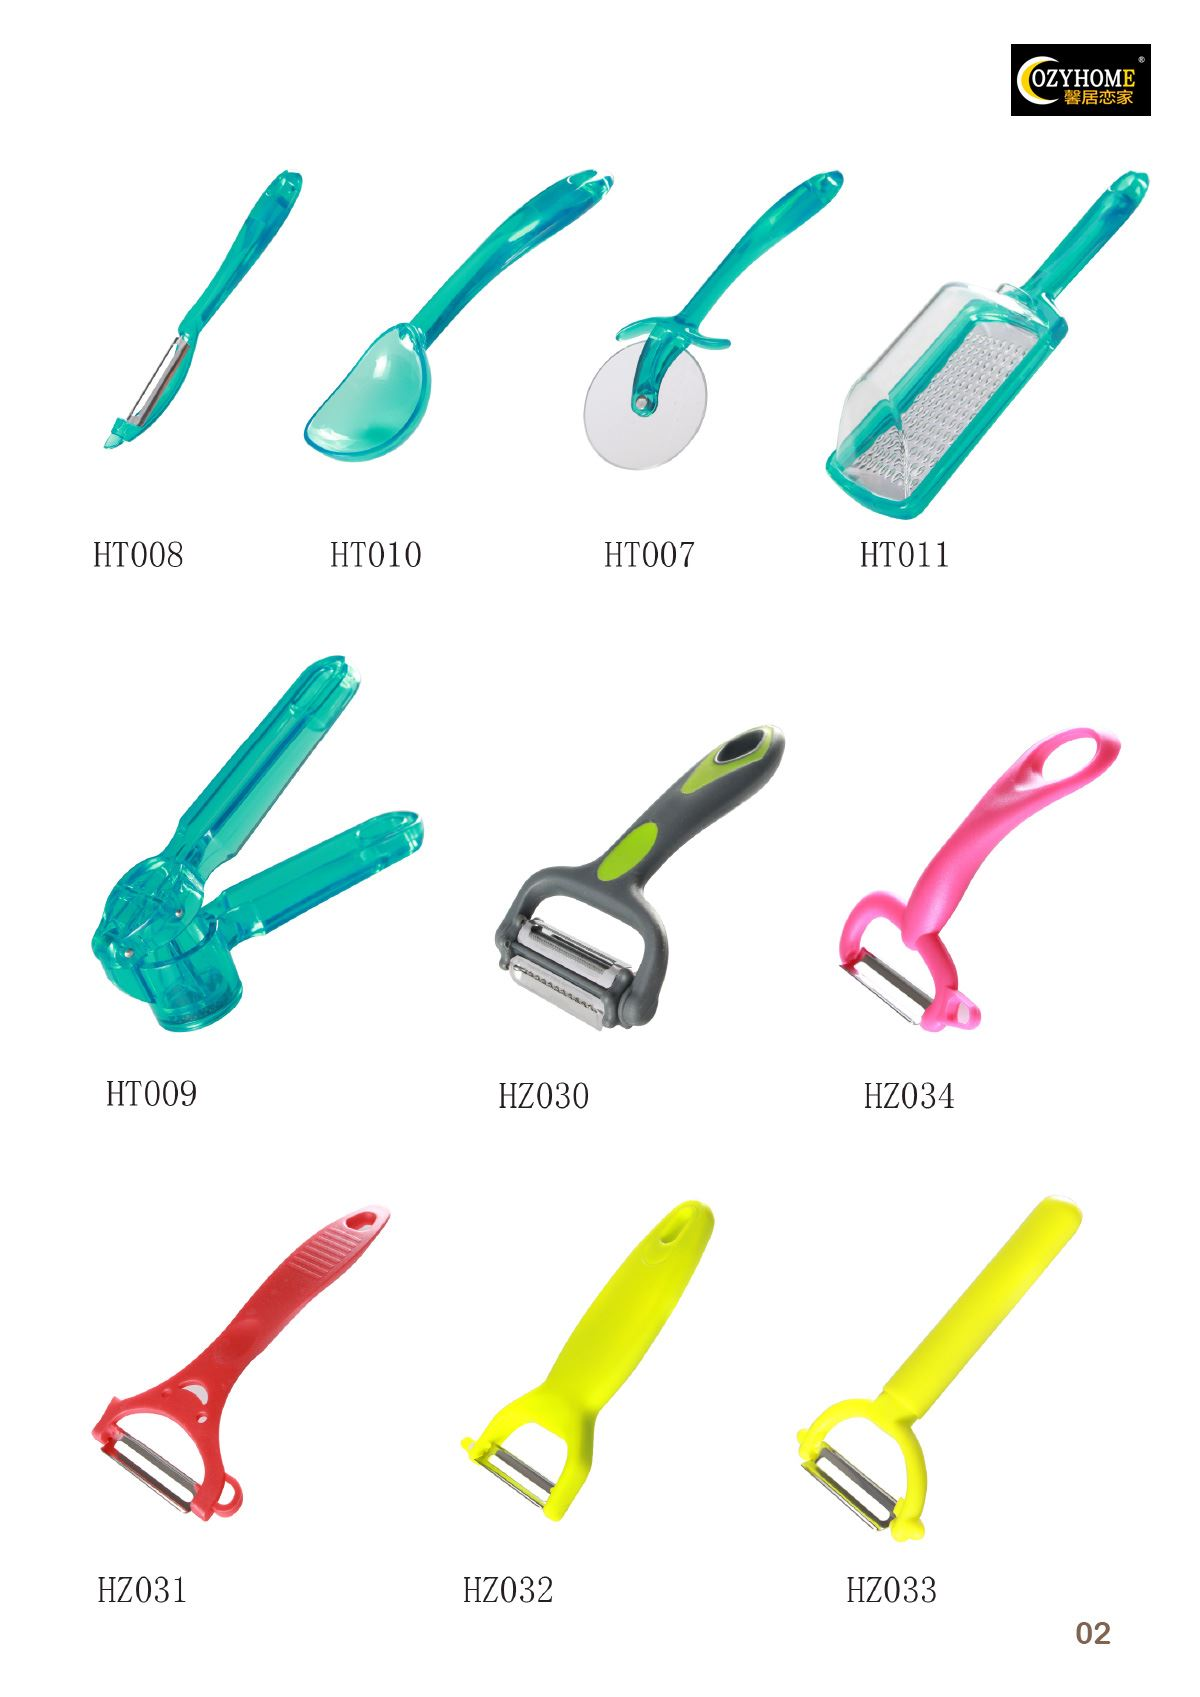 Kitchen Tools & Utensils Page: TG02